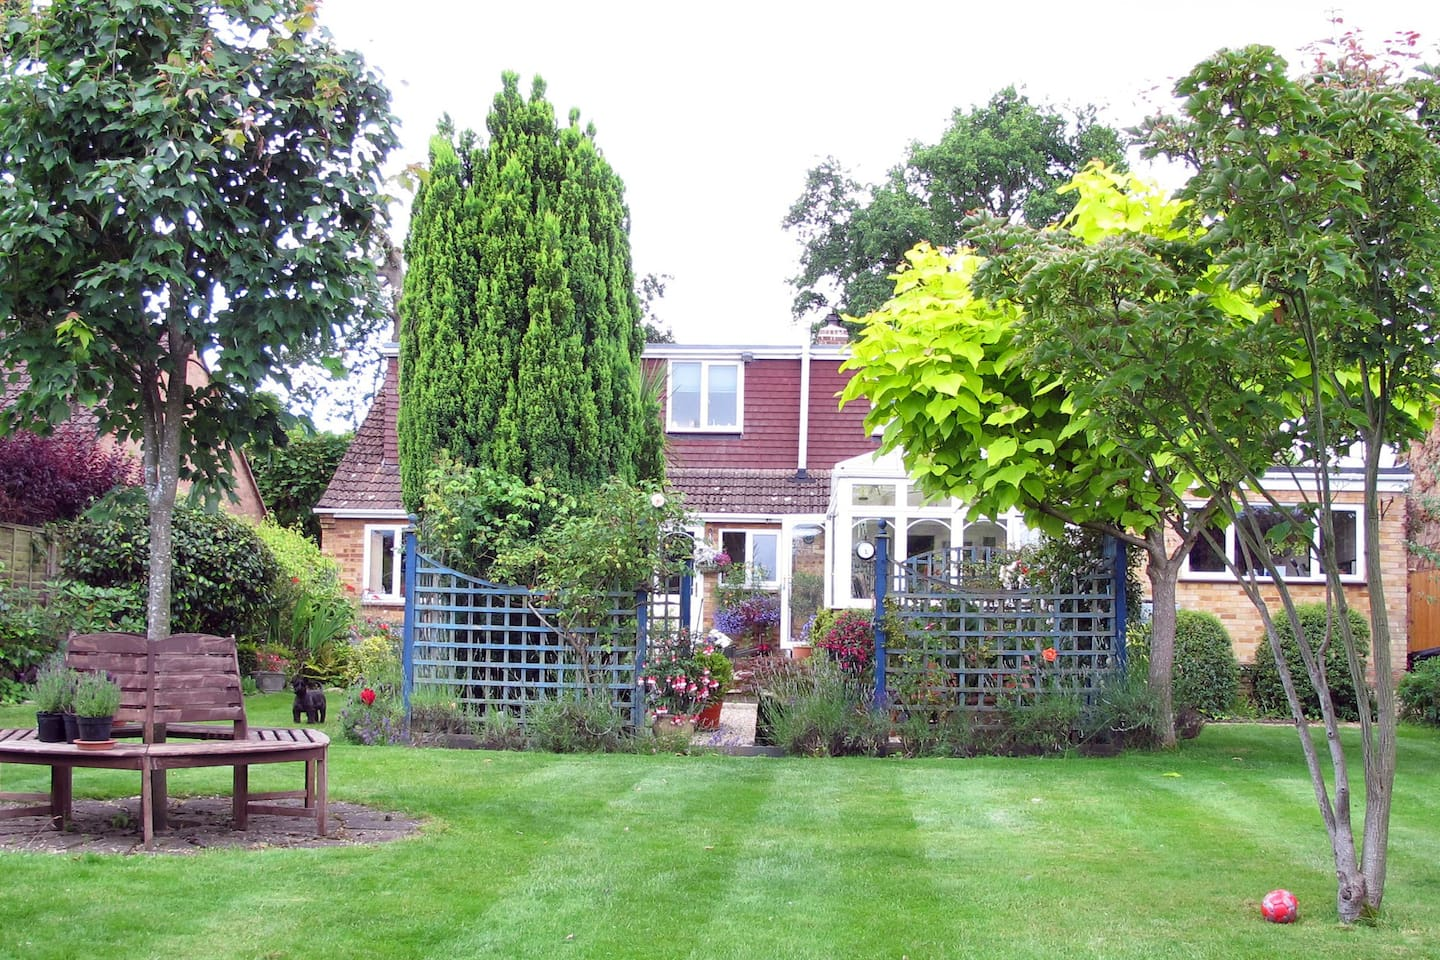 View of the house from back garden.